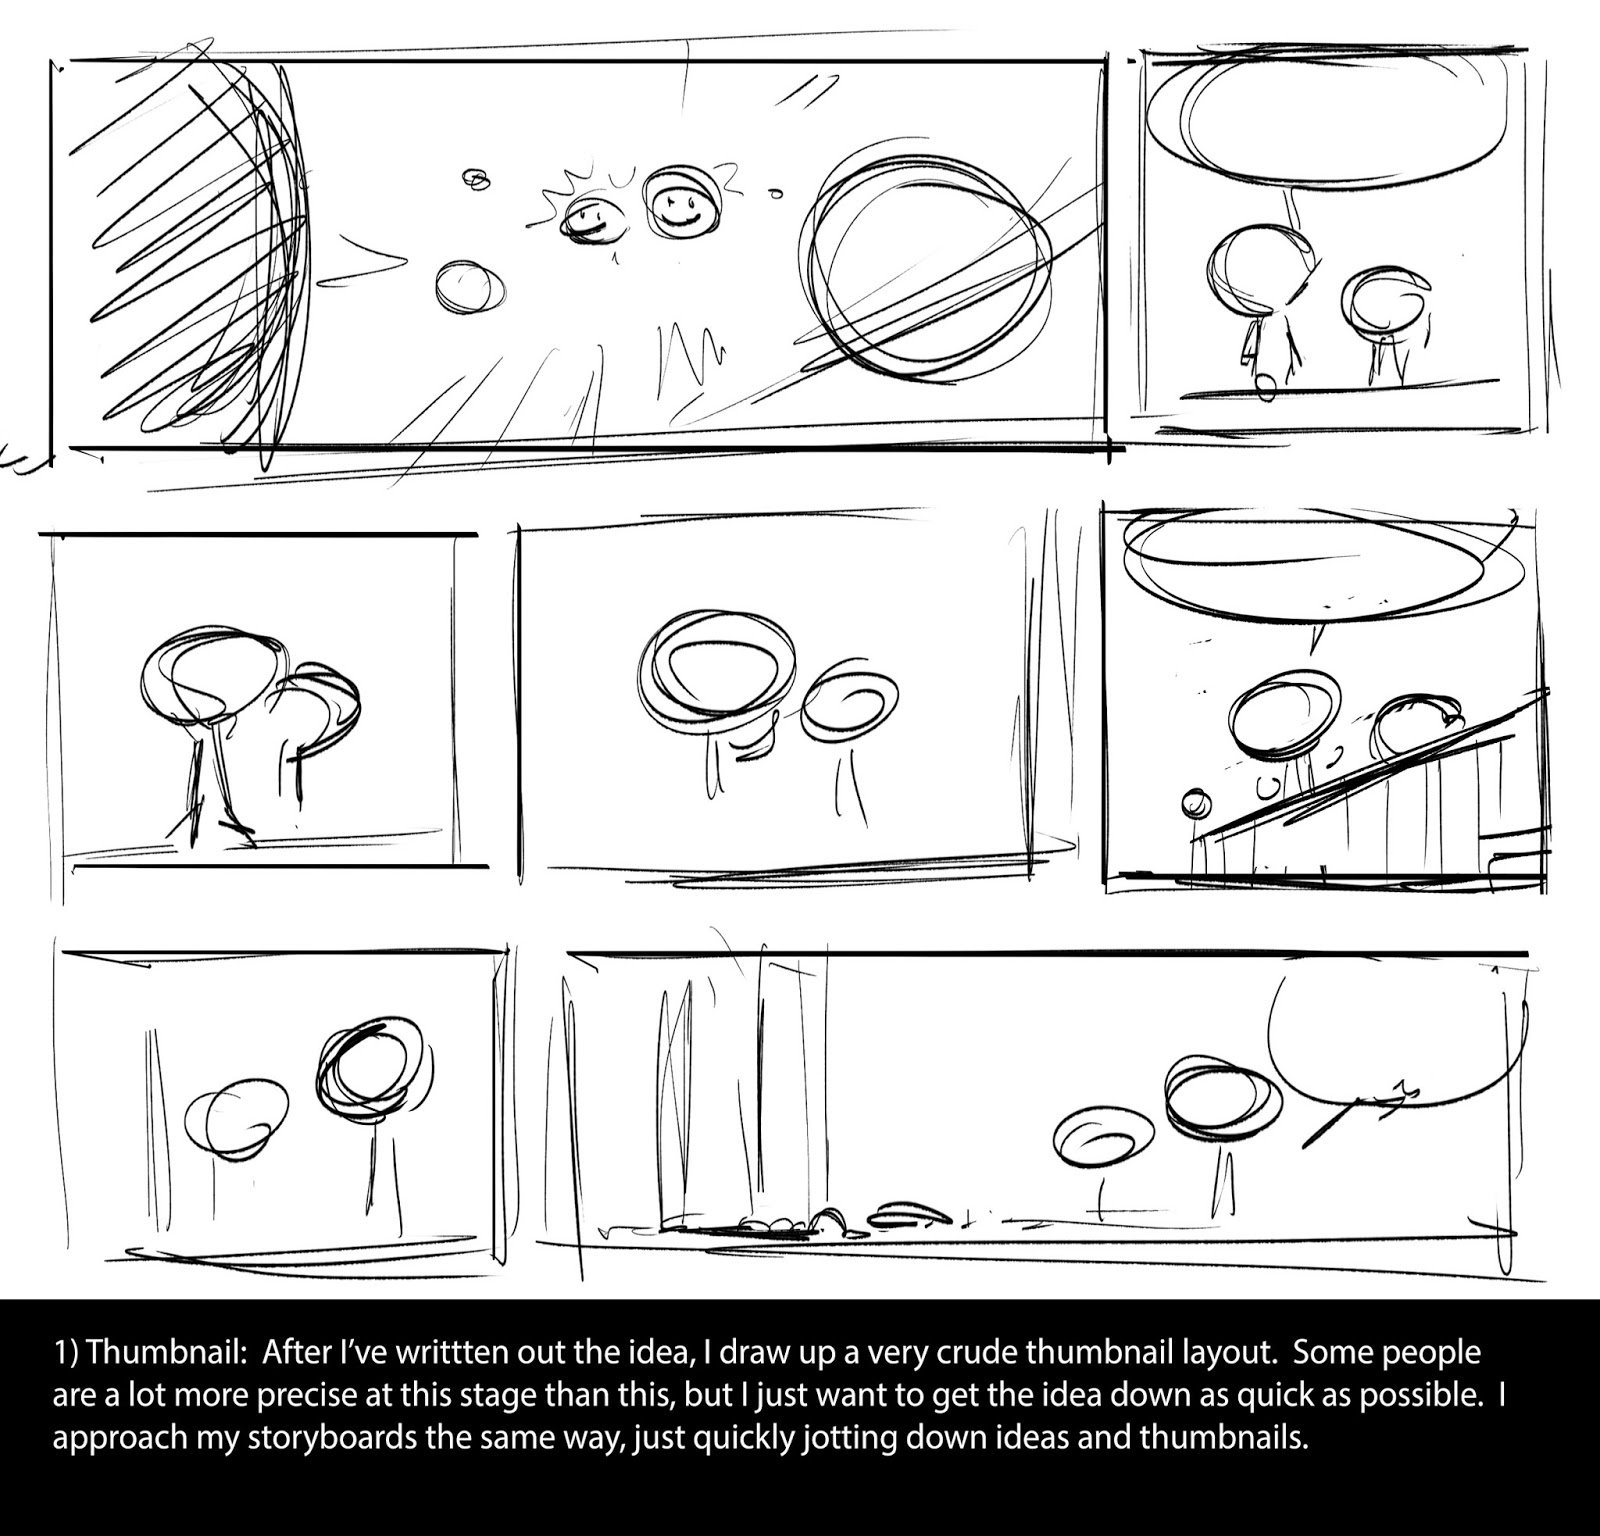 Tangled Life of Le Tang: Comic strip, step-by-step